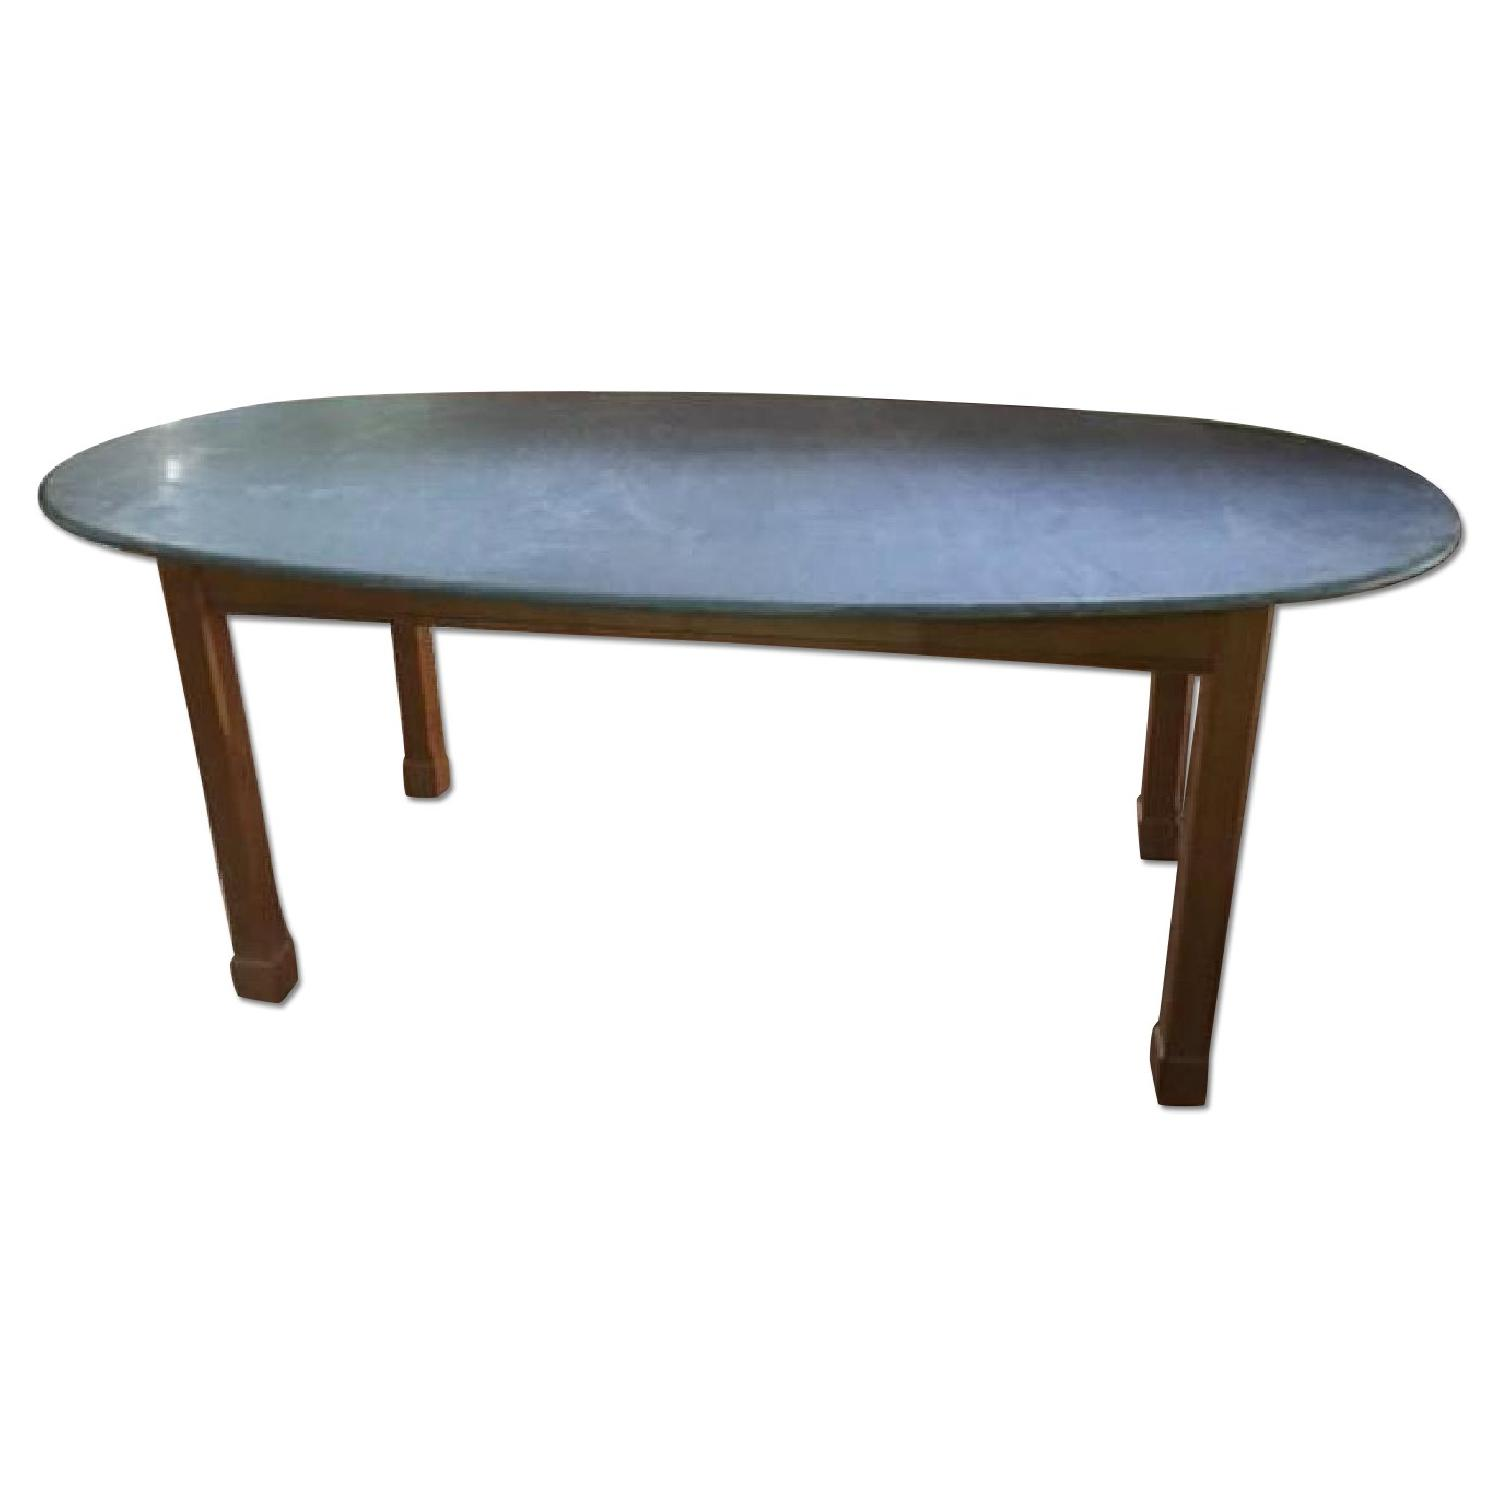 Zona Stone Top Oval Dining Table AptDeco : 1500 1500 frame 0 from www.aptdeco.com size 1500 x 1500 jpeg 64kB